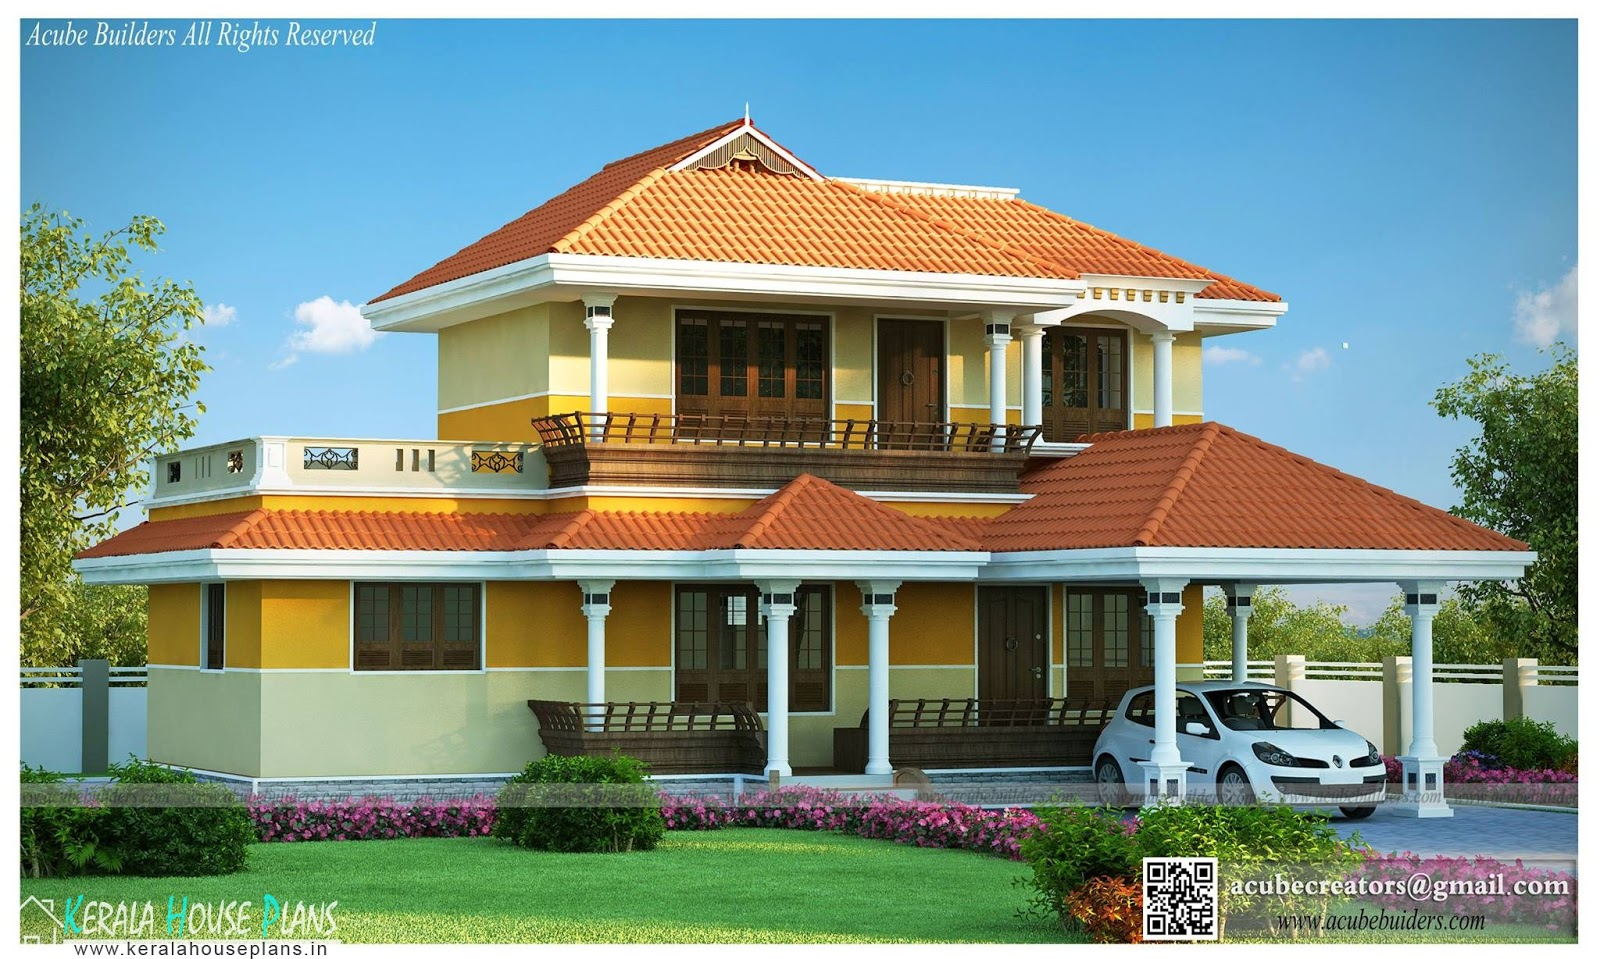 Traditional house plans in kerala kerala house plans for Plan houses